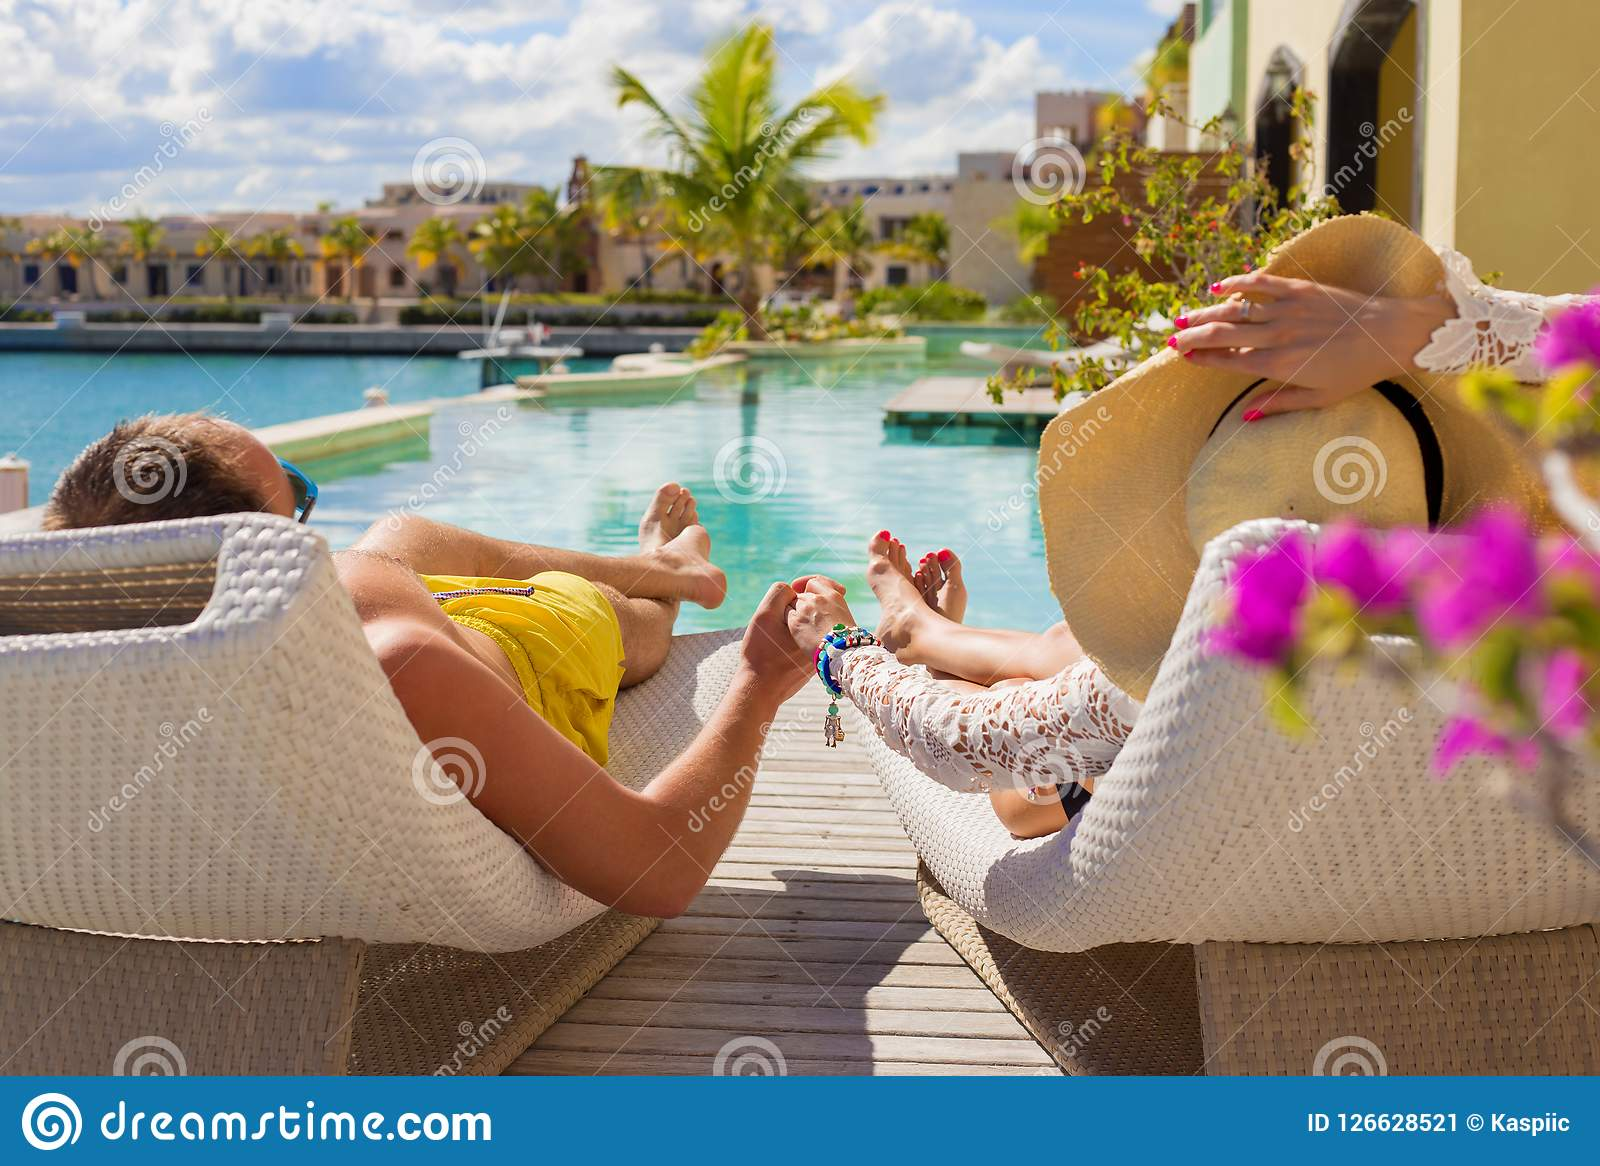 Couple On Vacation In Luxury Resort Stock Image  Image of